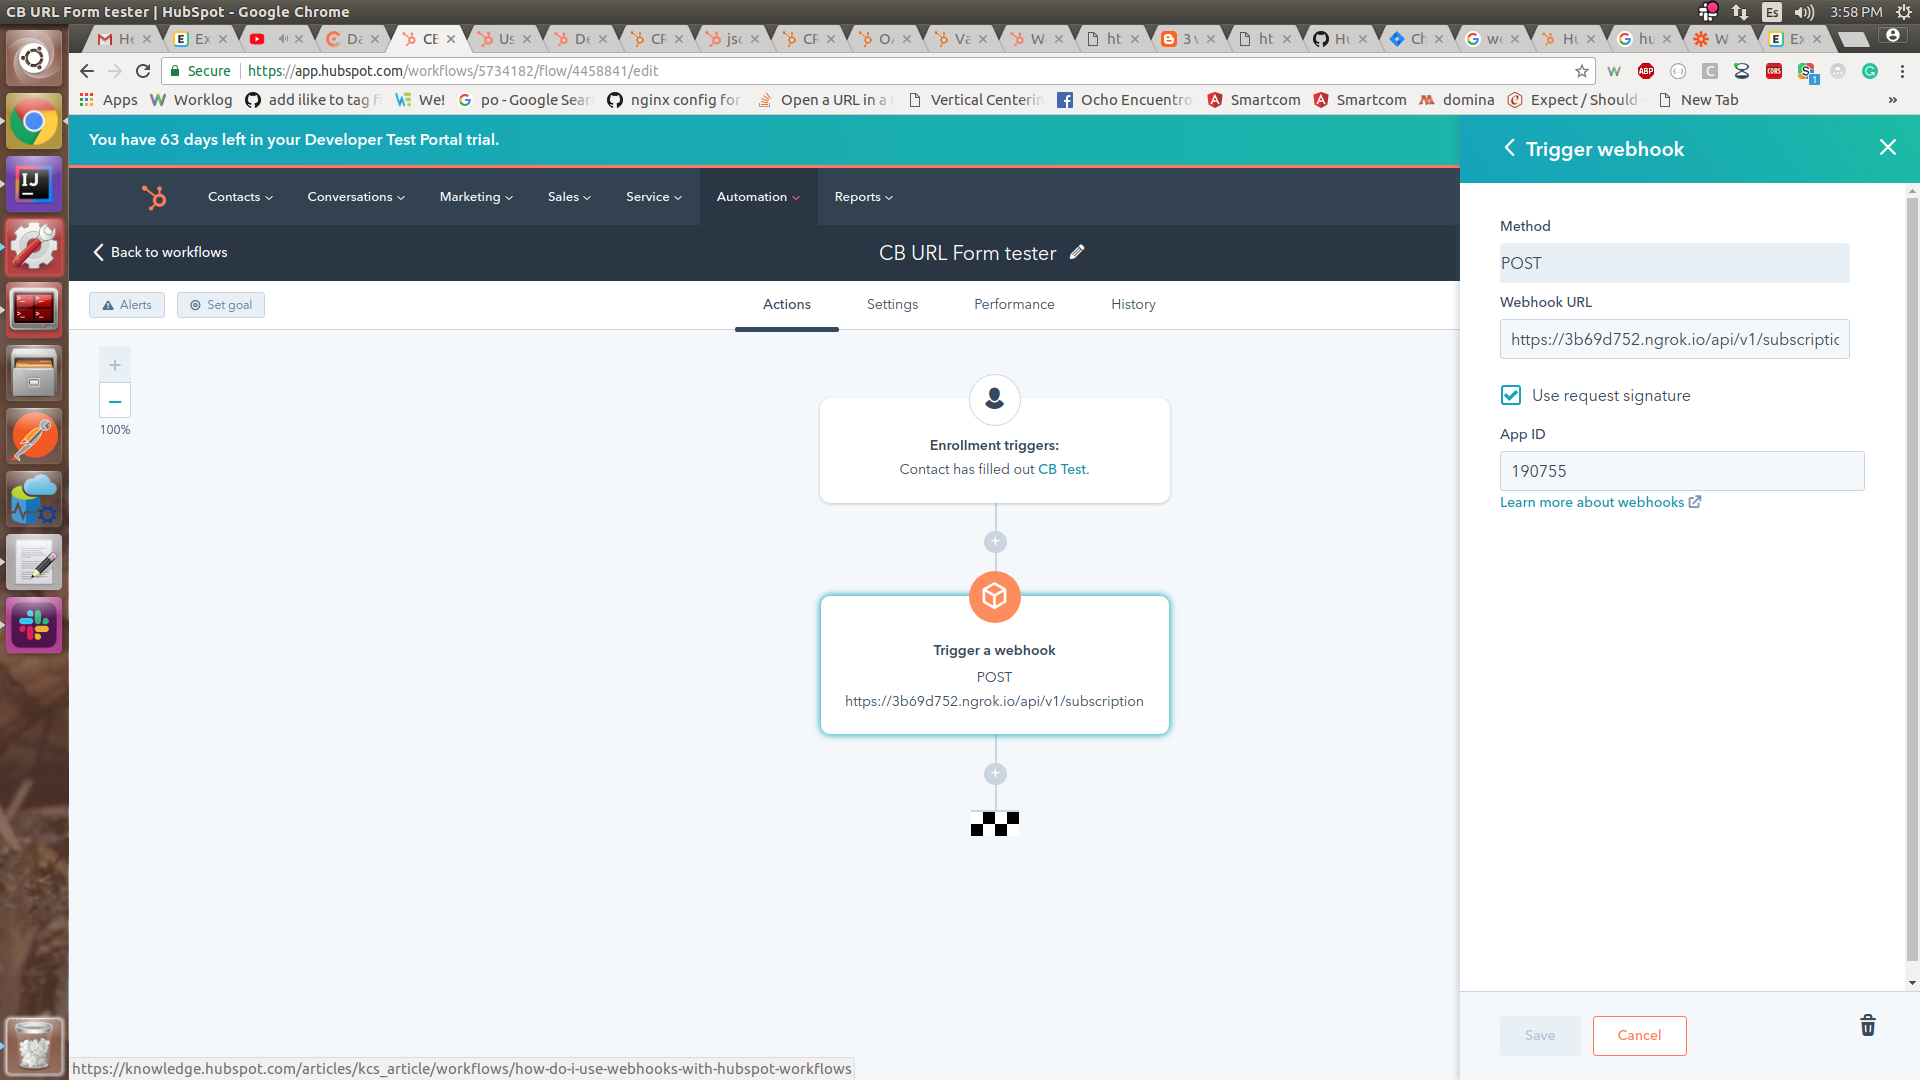 Solved: HubSpot Community - validate request implement in